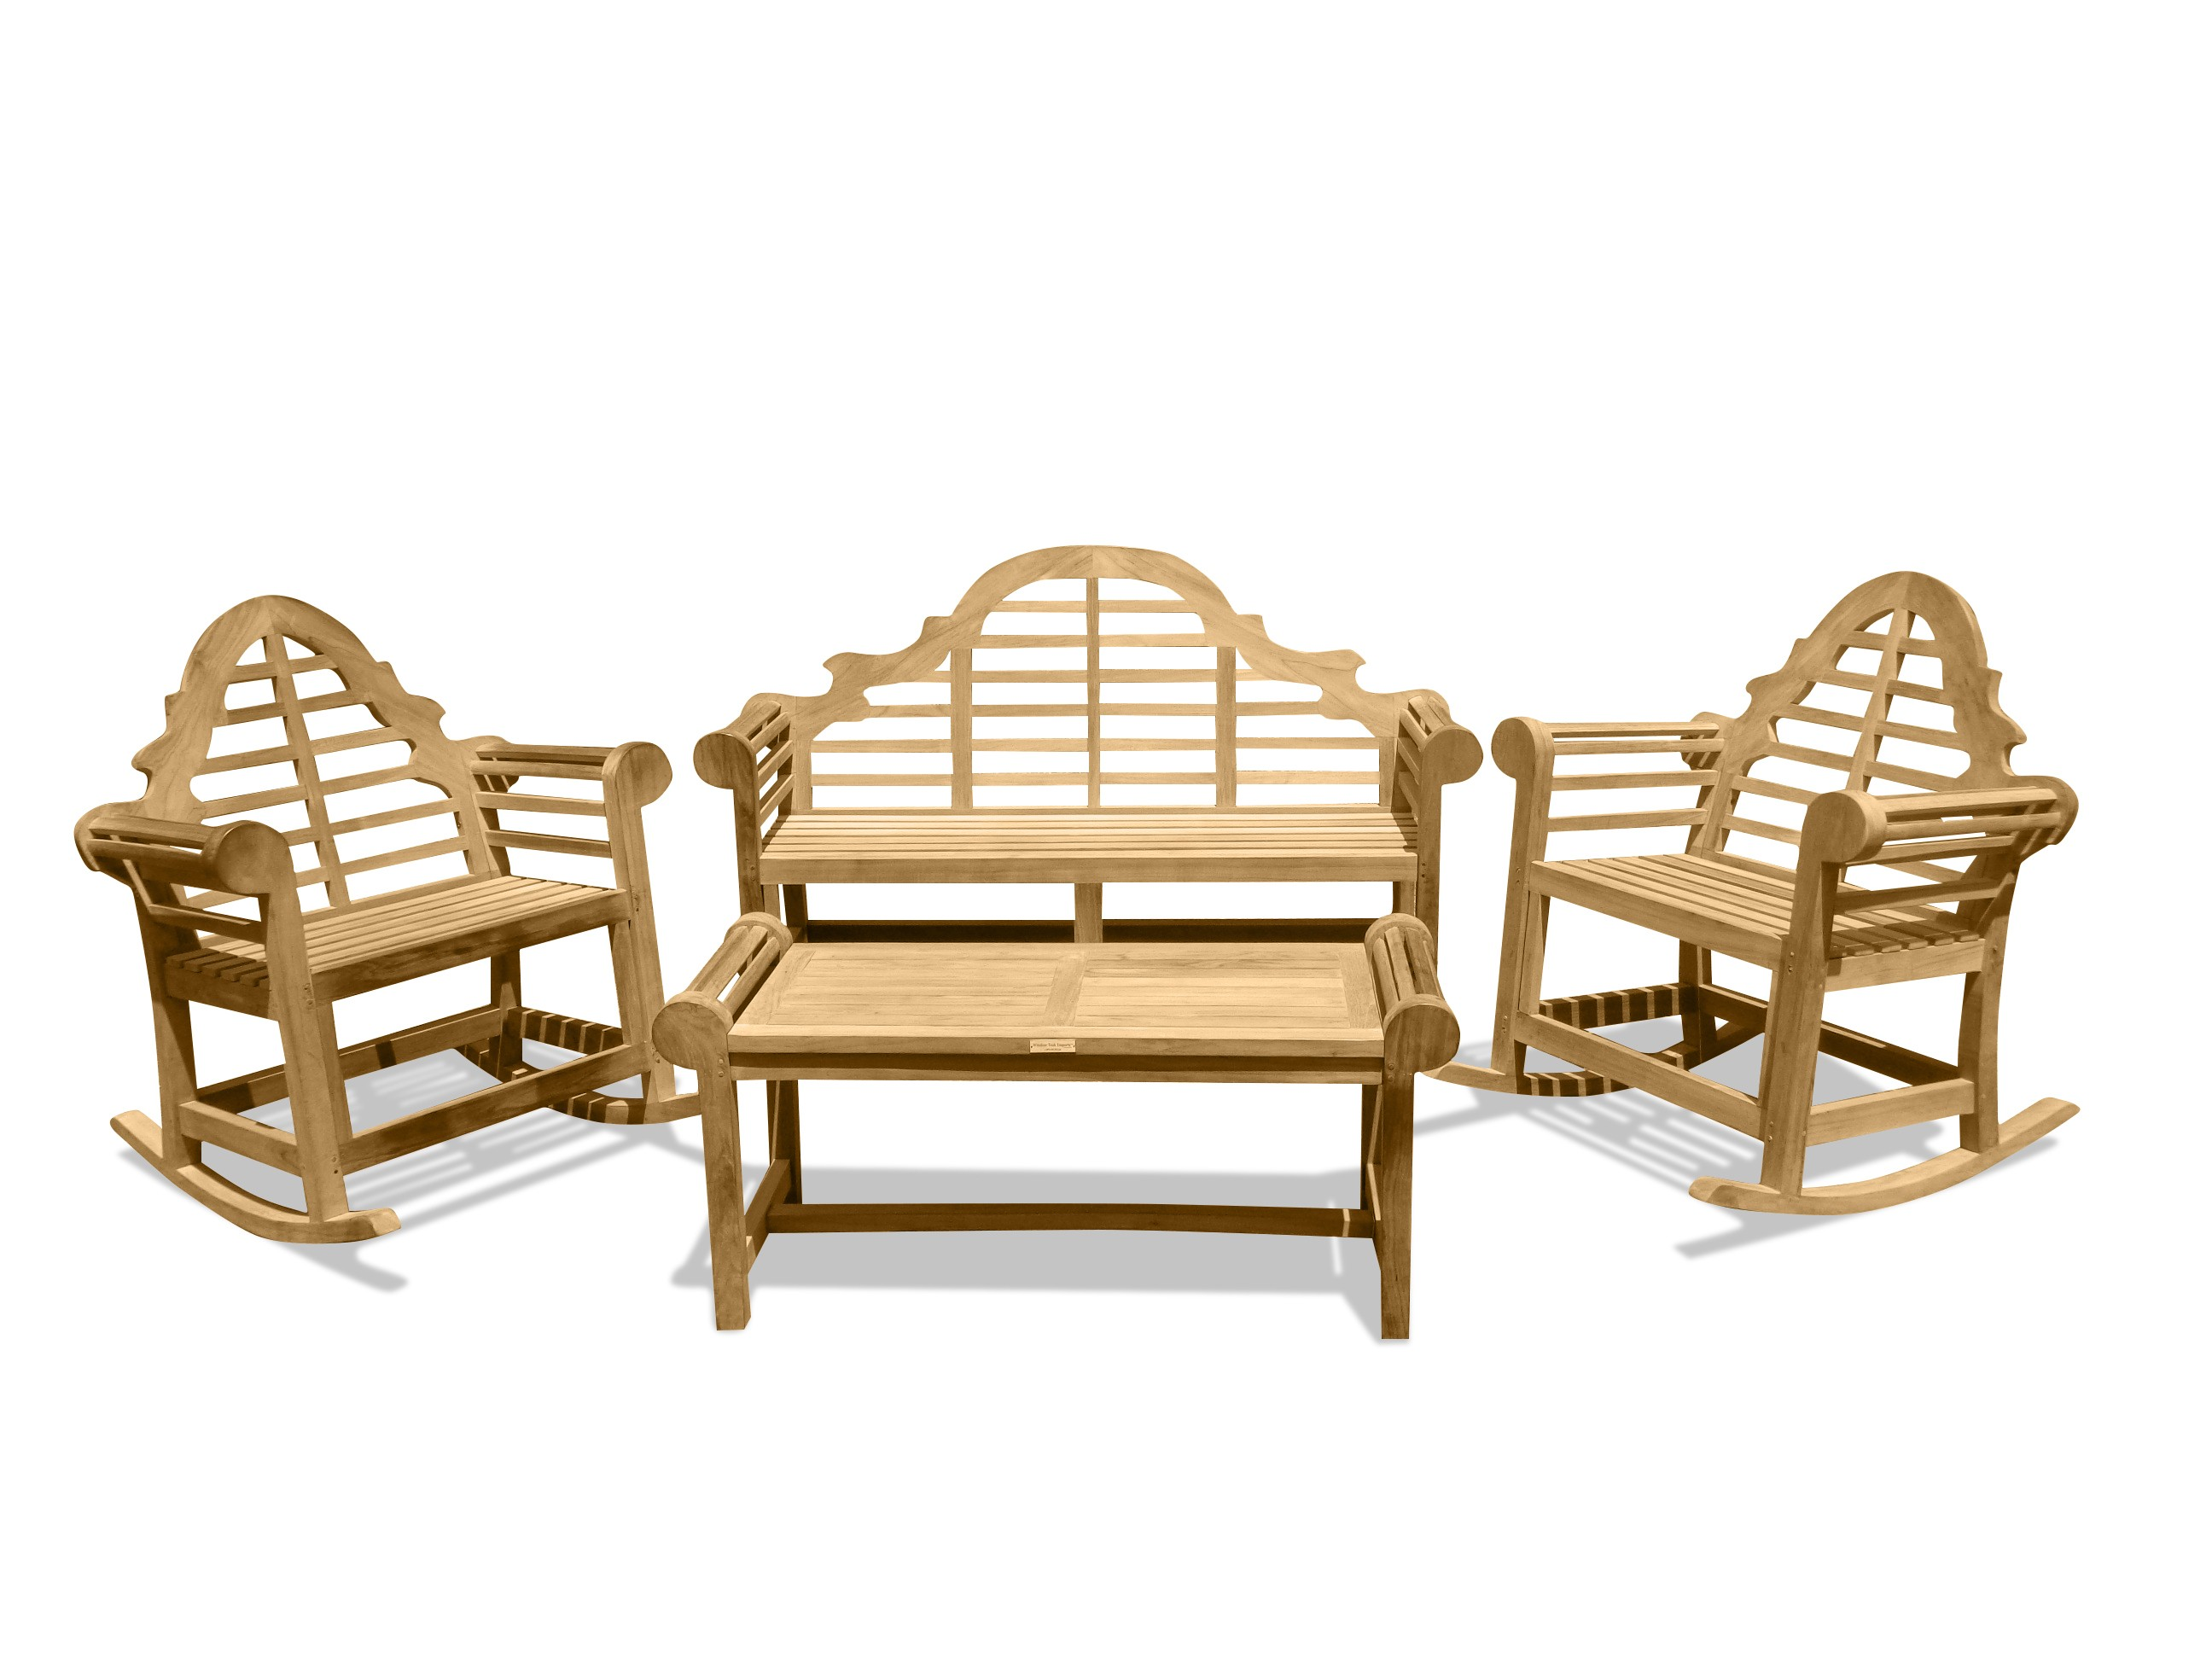 Lutyens Double Rocker, 2 Single Rockers, & Table